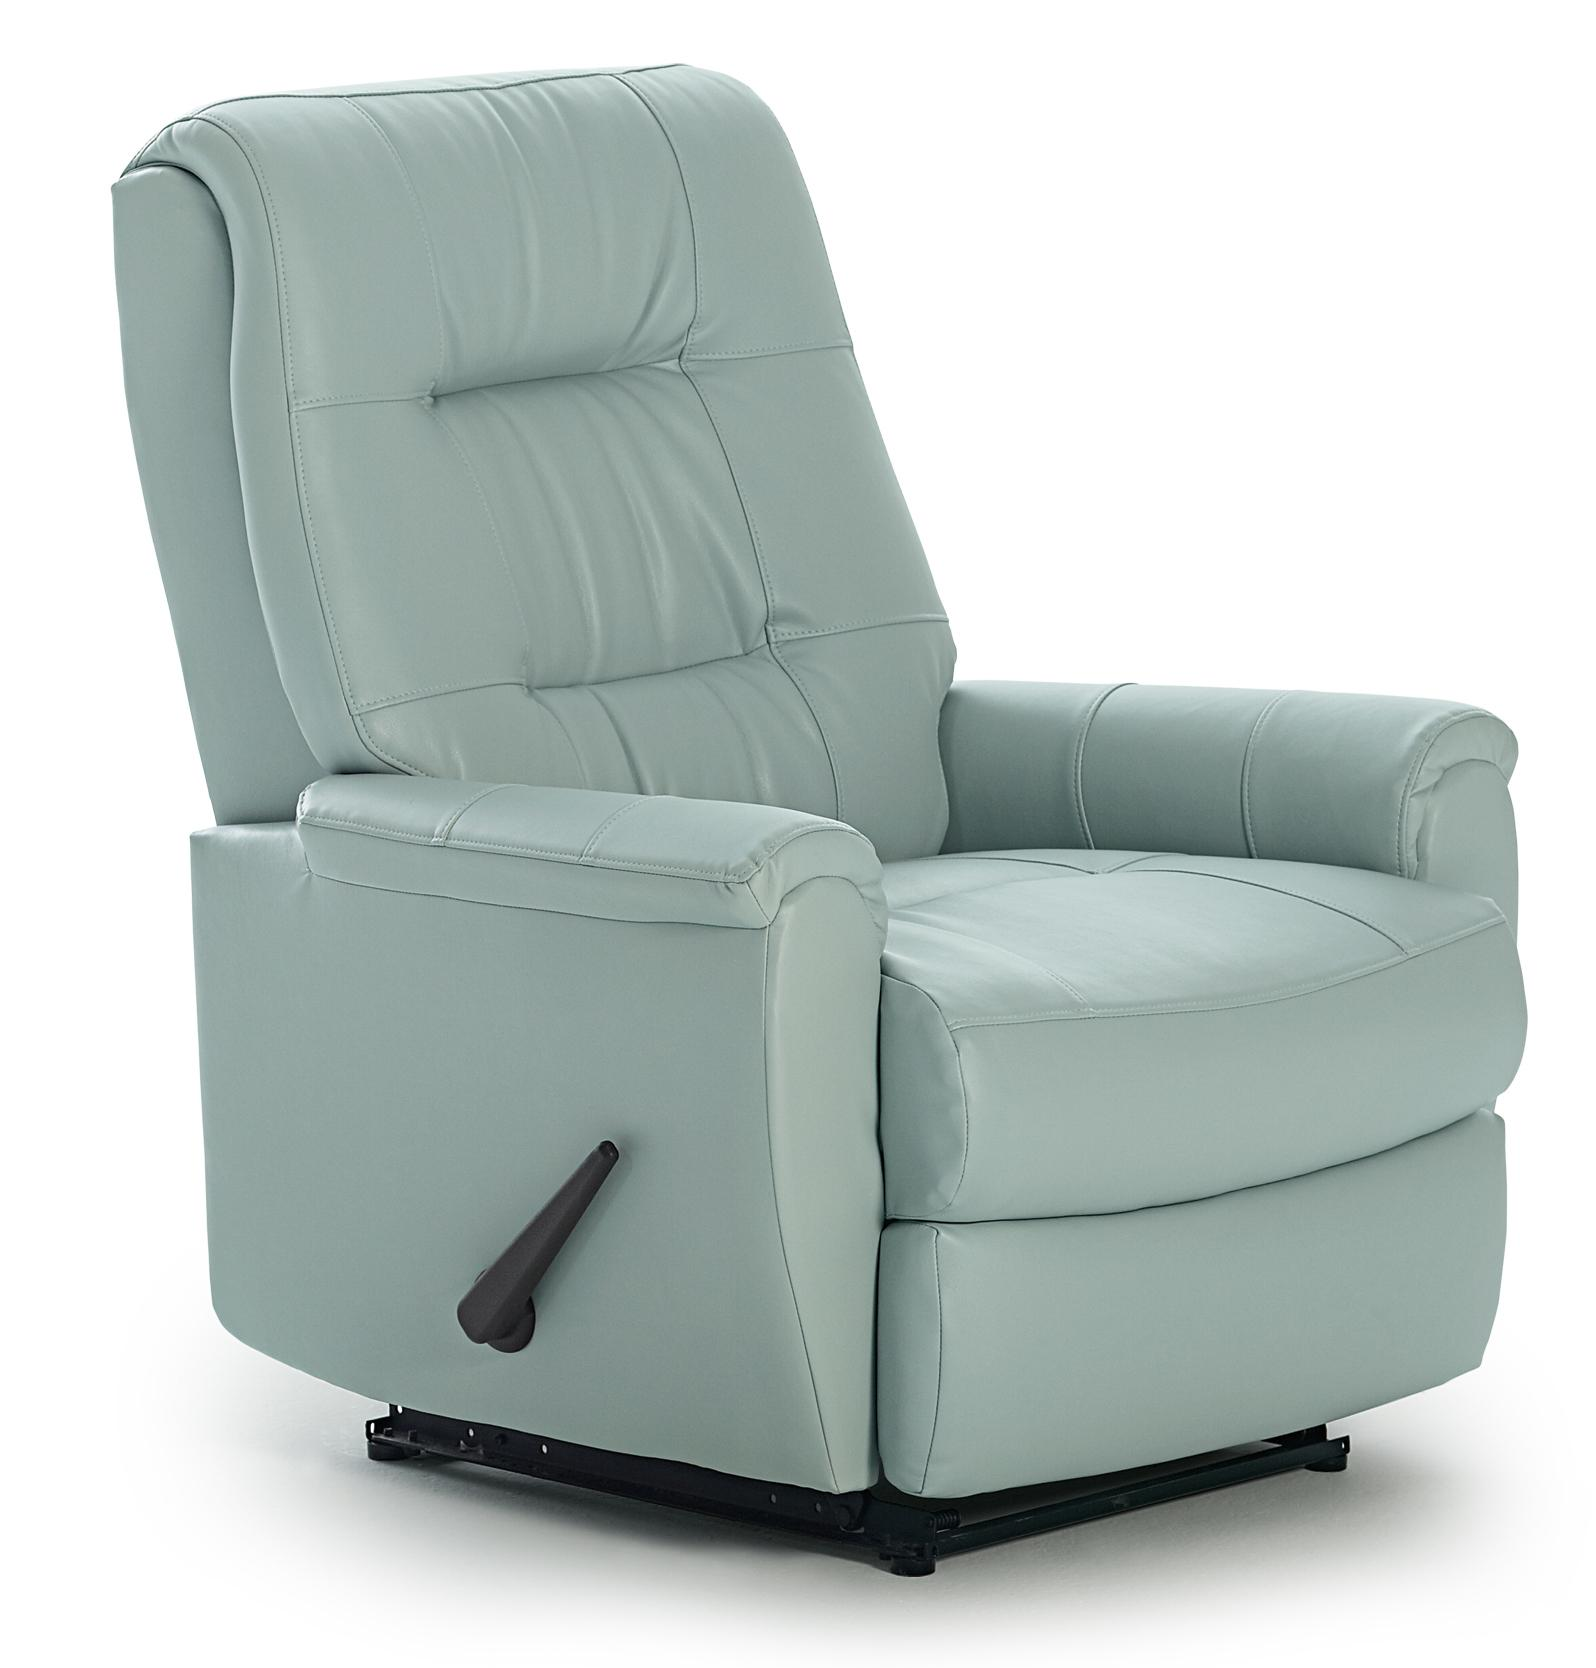 Space Saving Recliners  Wall Hugger Recliners